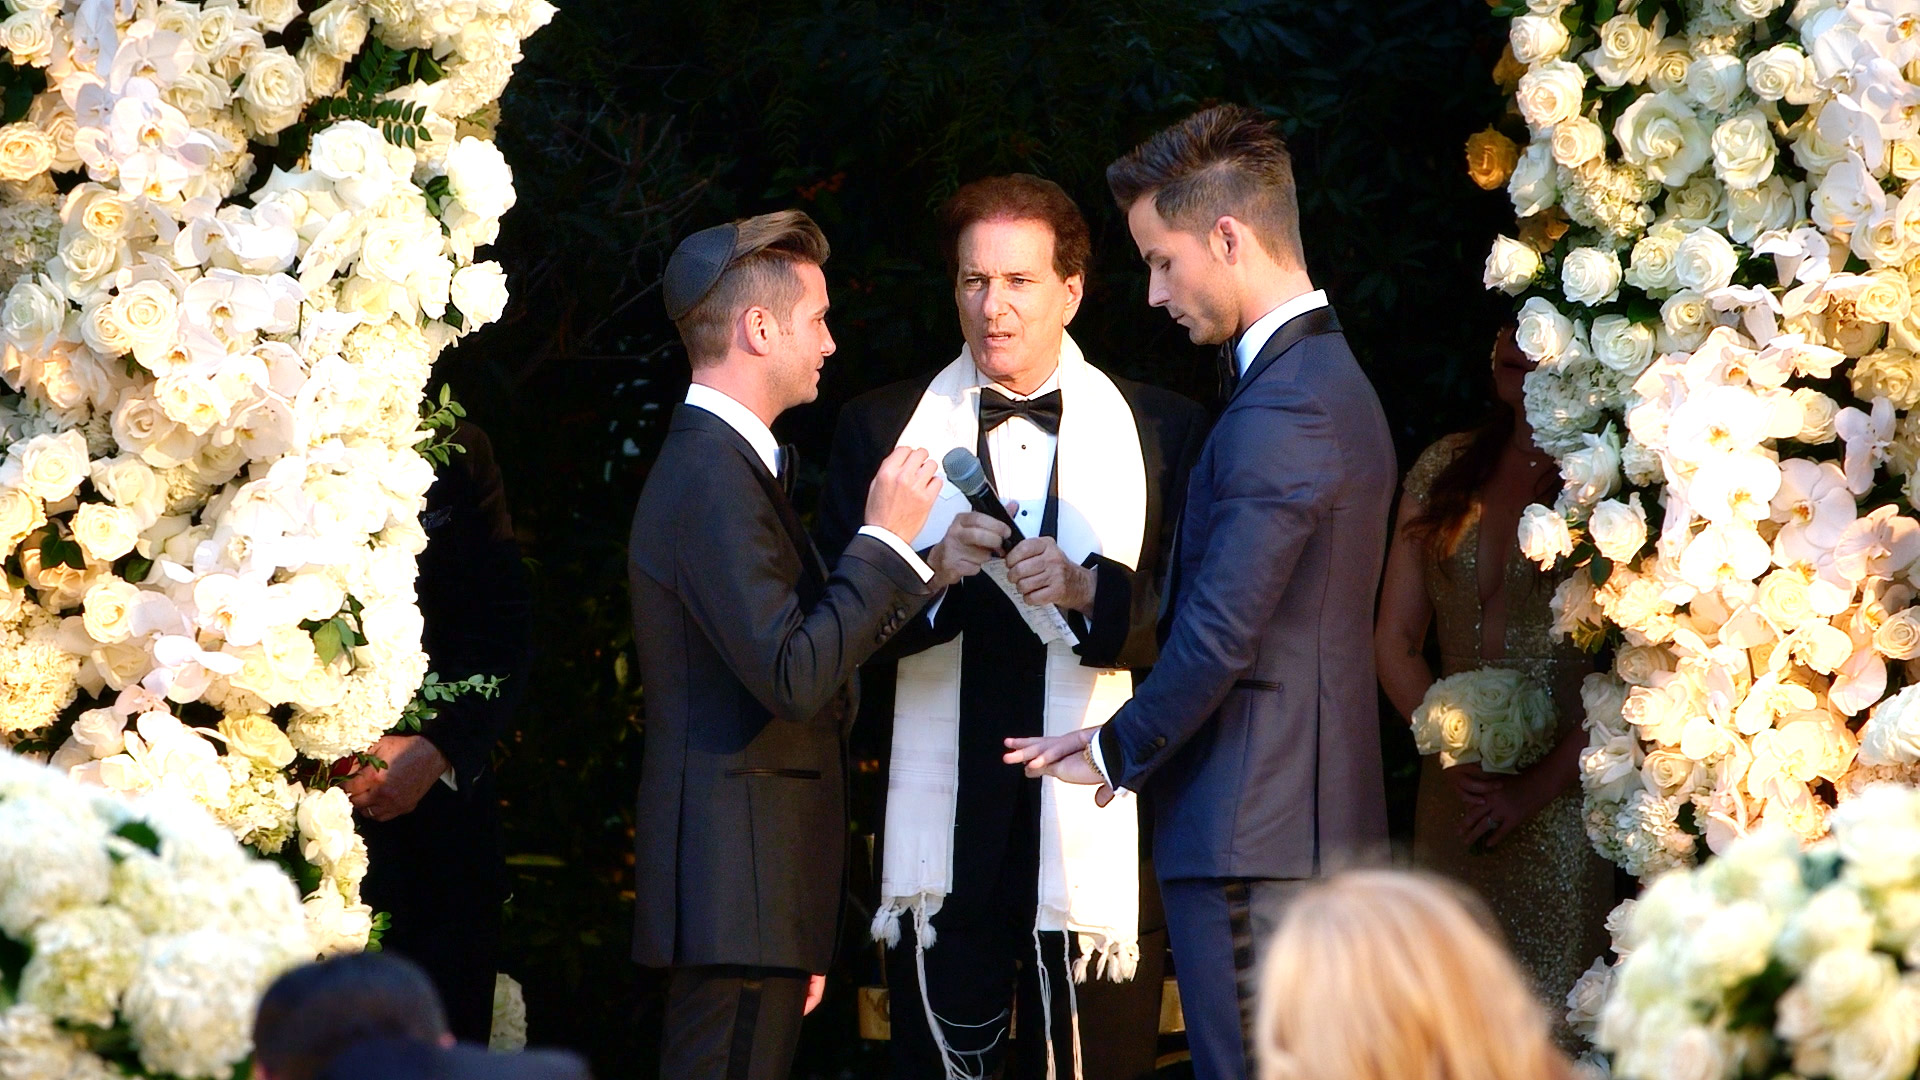 Josh Flagg and Bobby Boyd Recite Their Wedding Vows